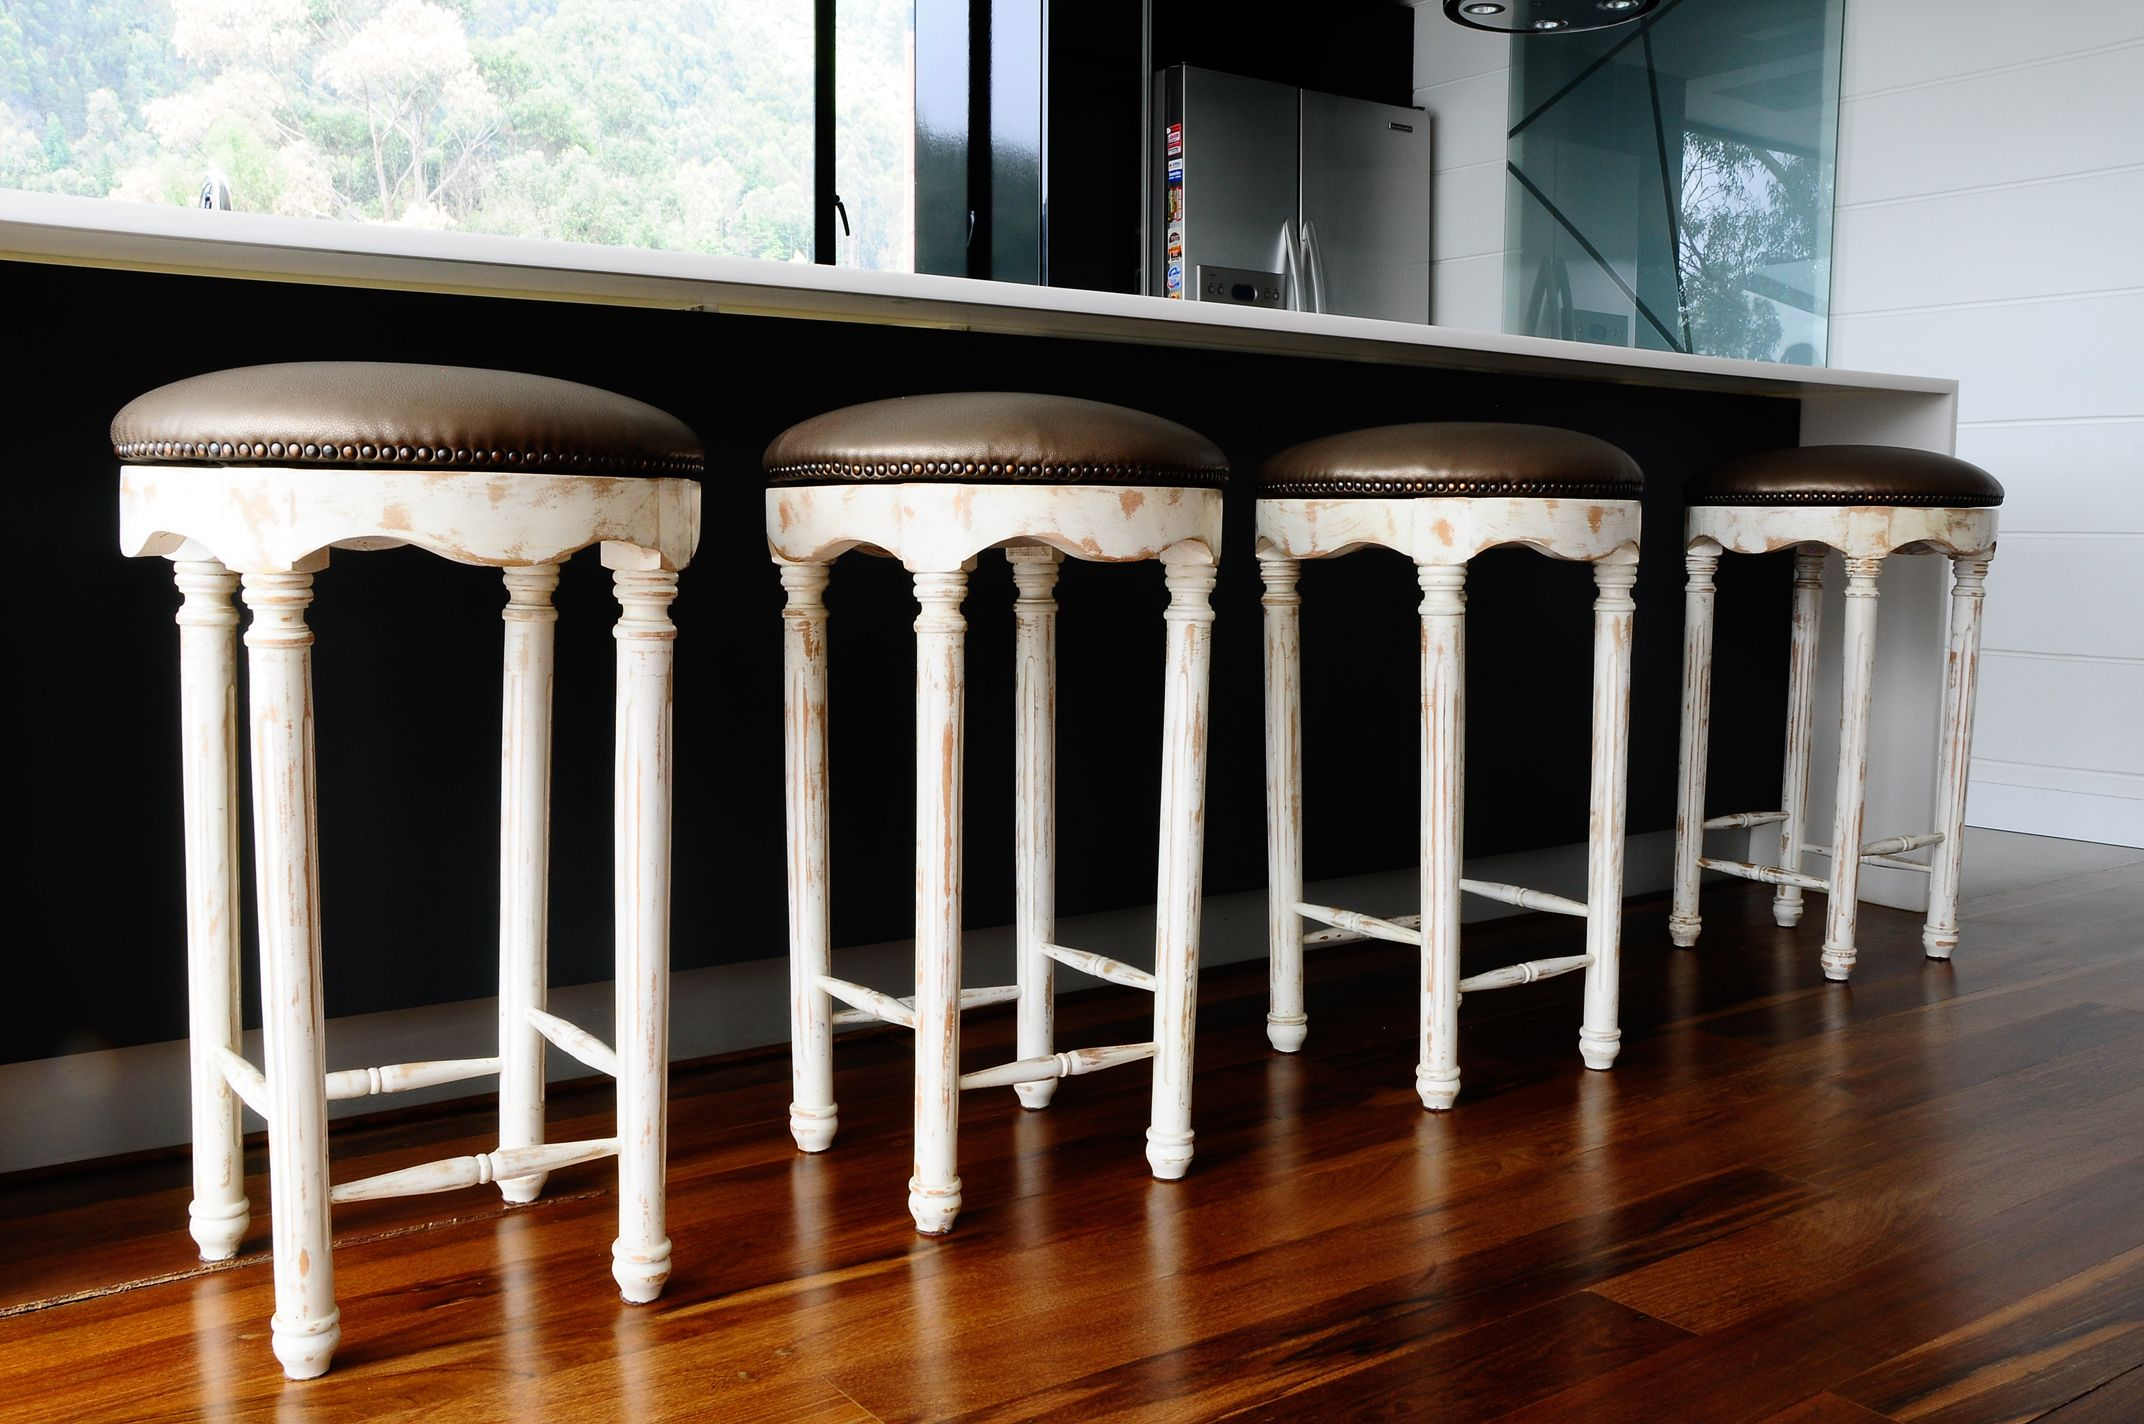 Sillas barra para cocina kitchen bar chairs cadeiras de bar de ...